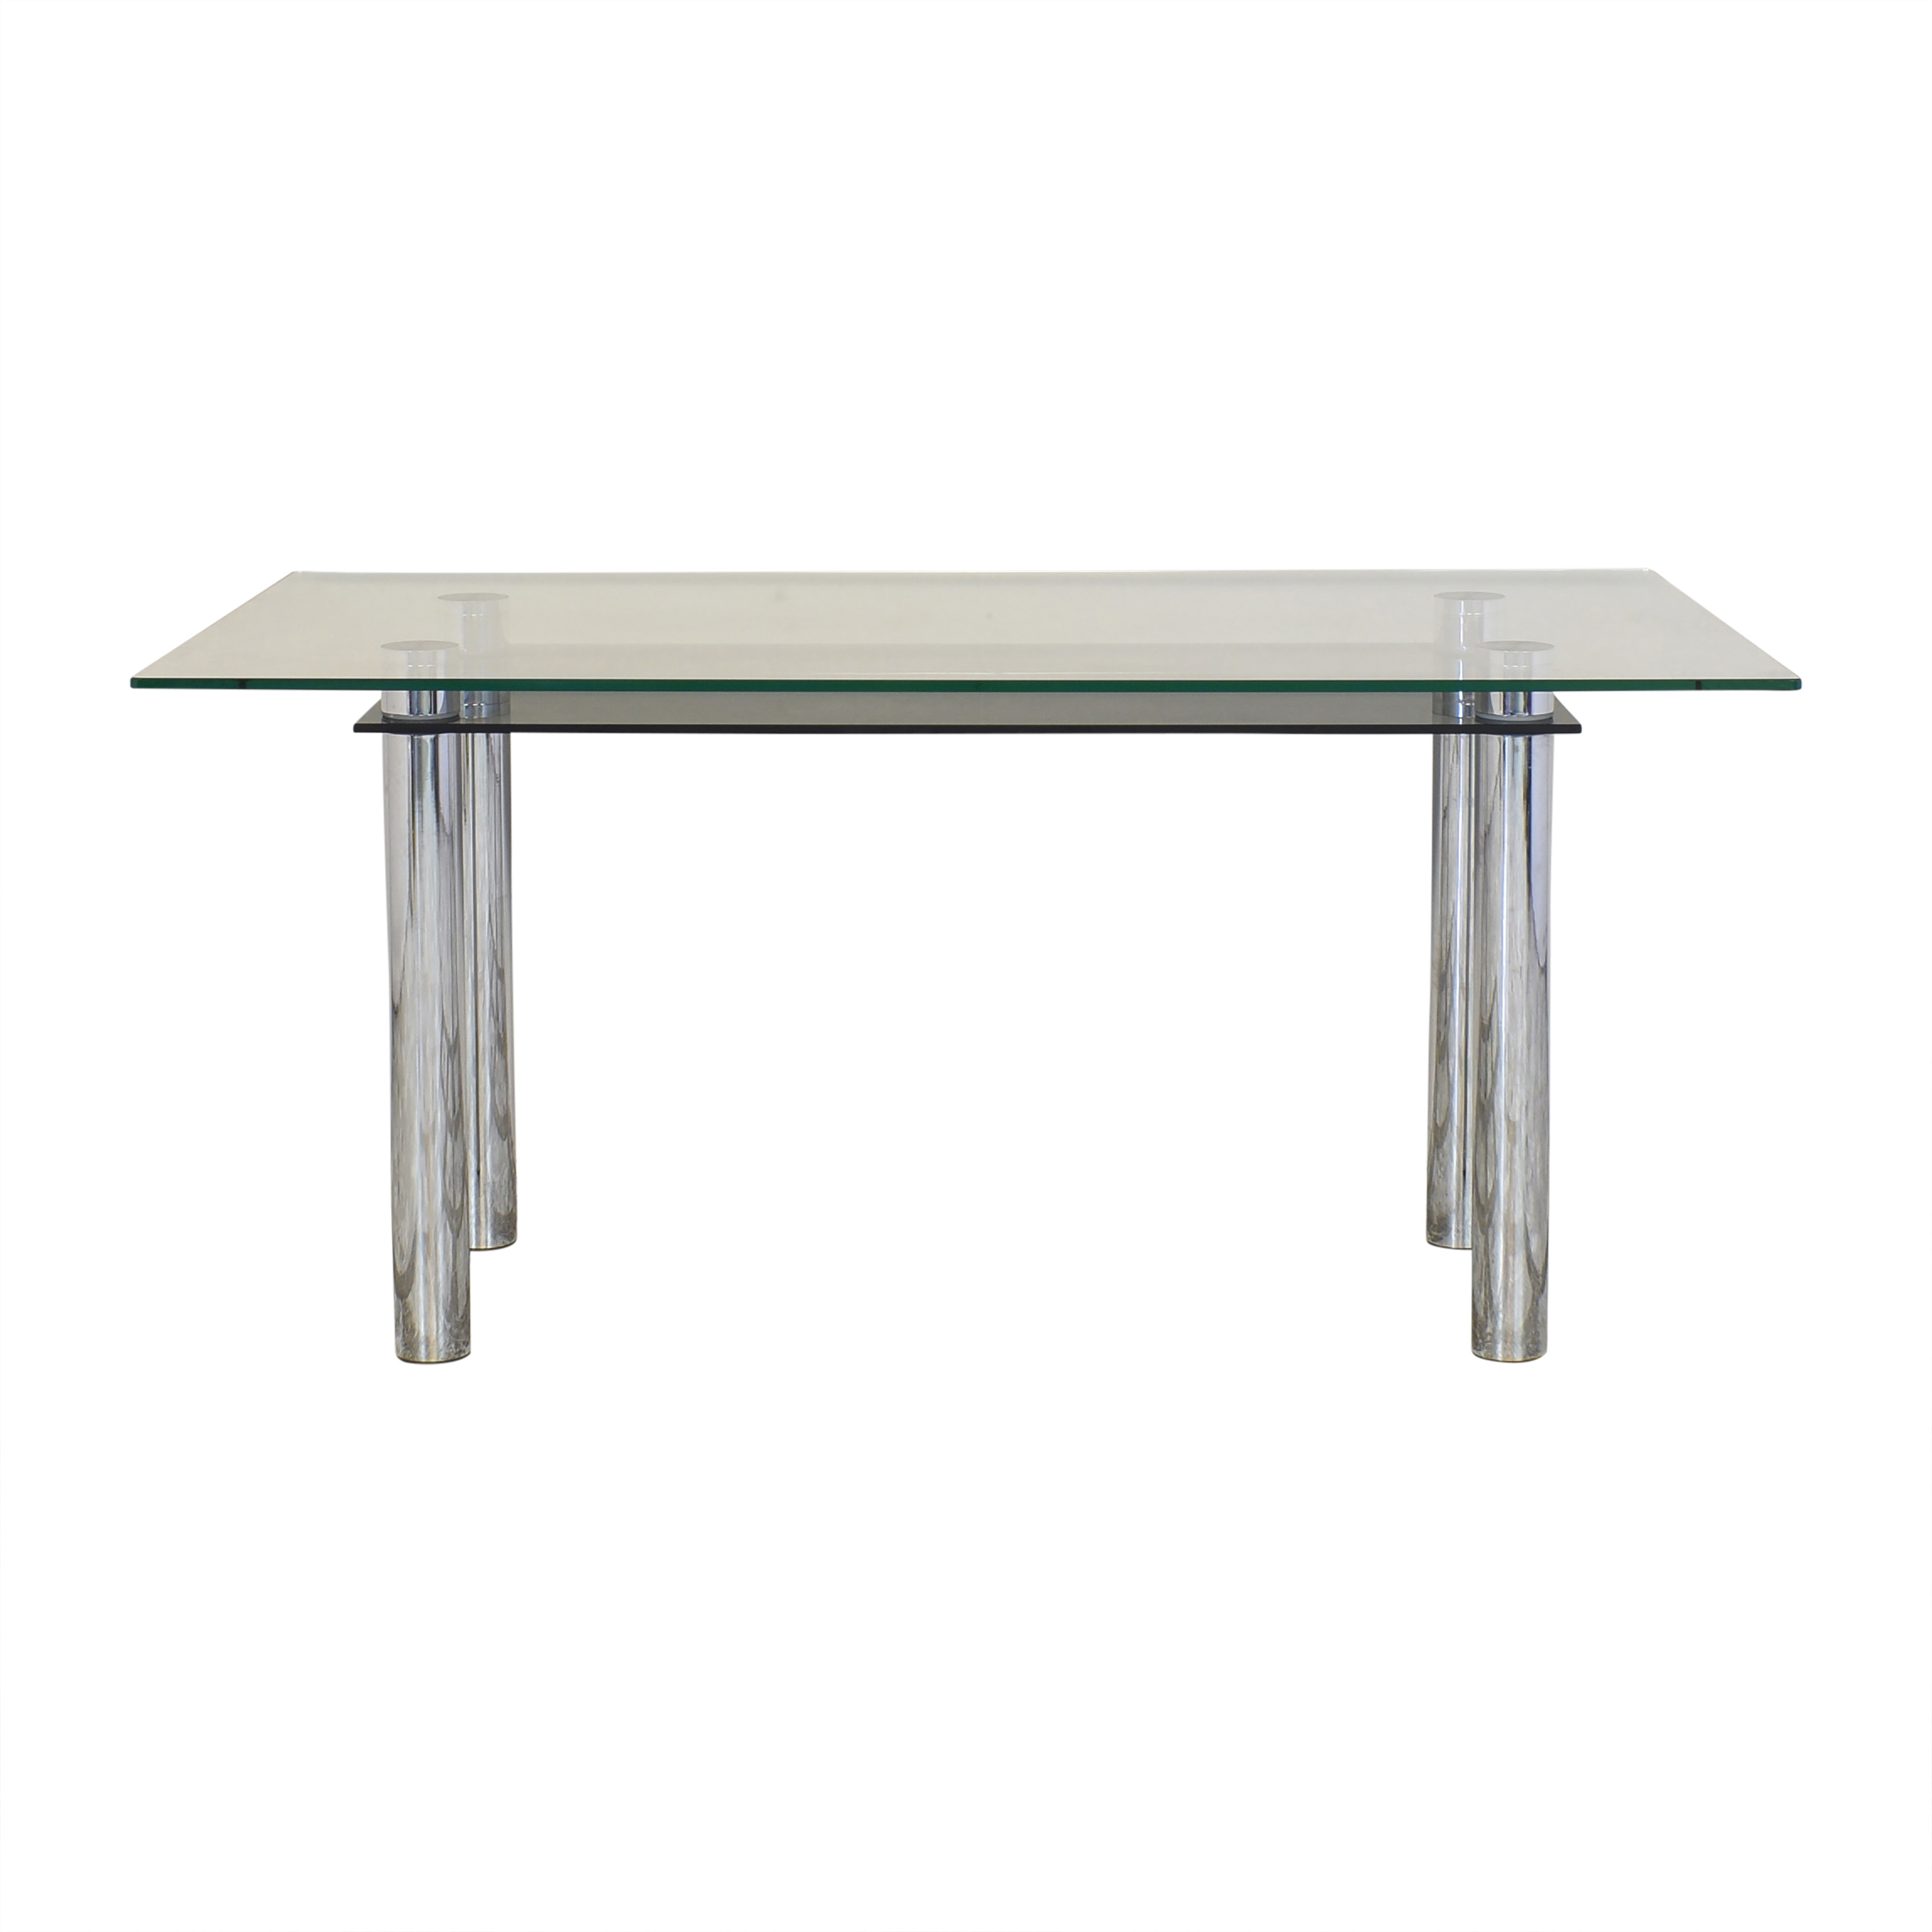 Effezeta Effezeta Dining Table with Transparent Surface ct